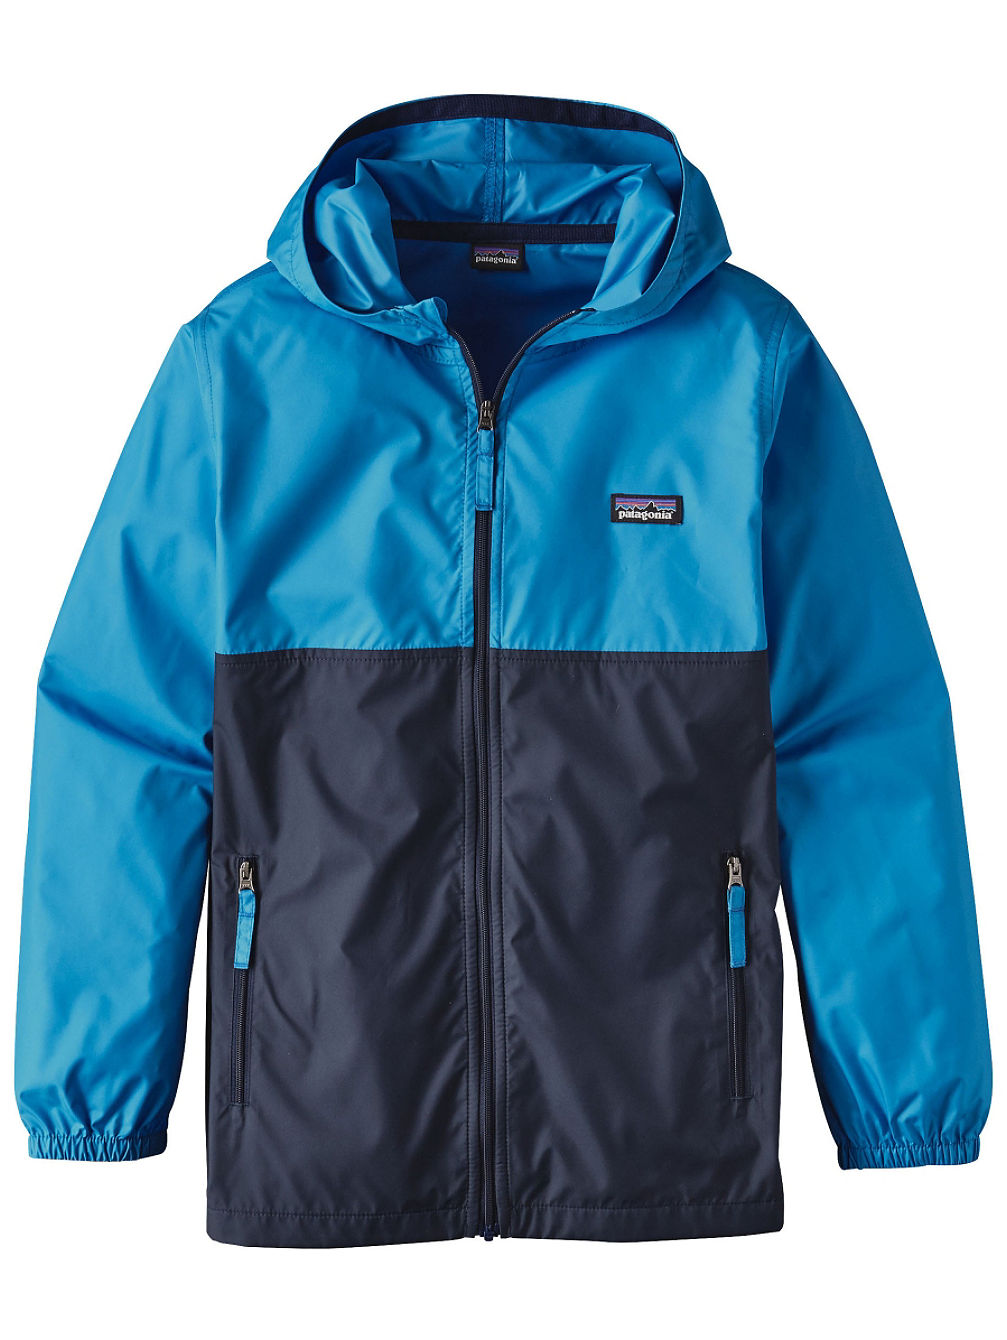 buy patagonia light and variable zip hoodie boys online at blue tomato. Black Bedroom Furniture Sets. Home Design Ideas